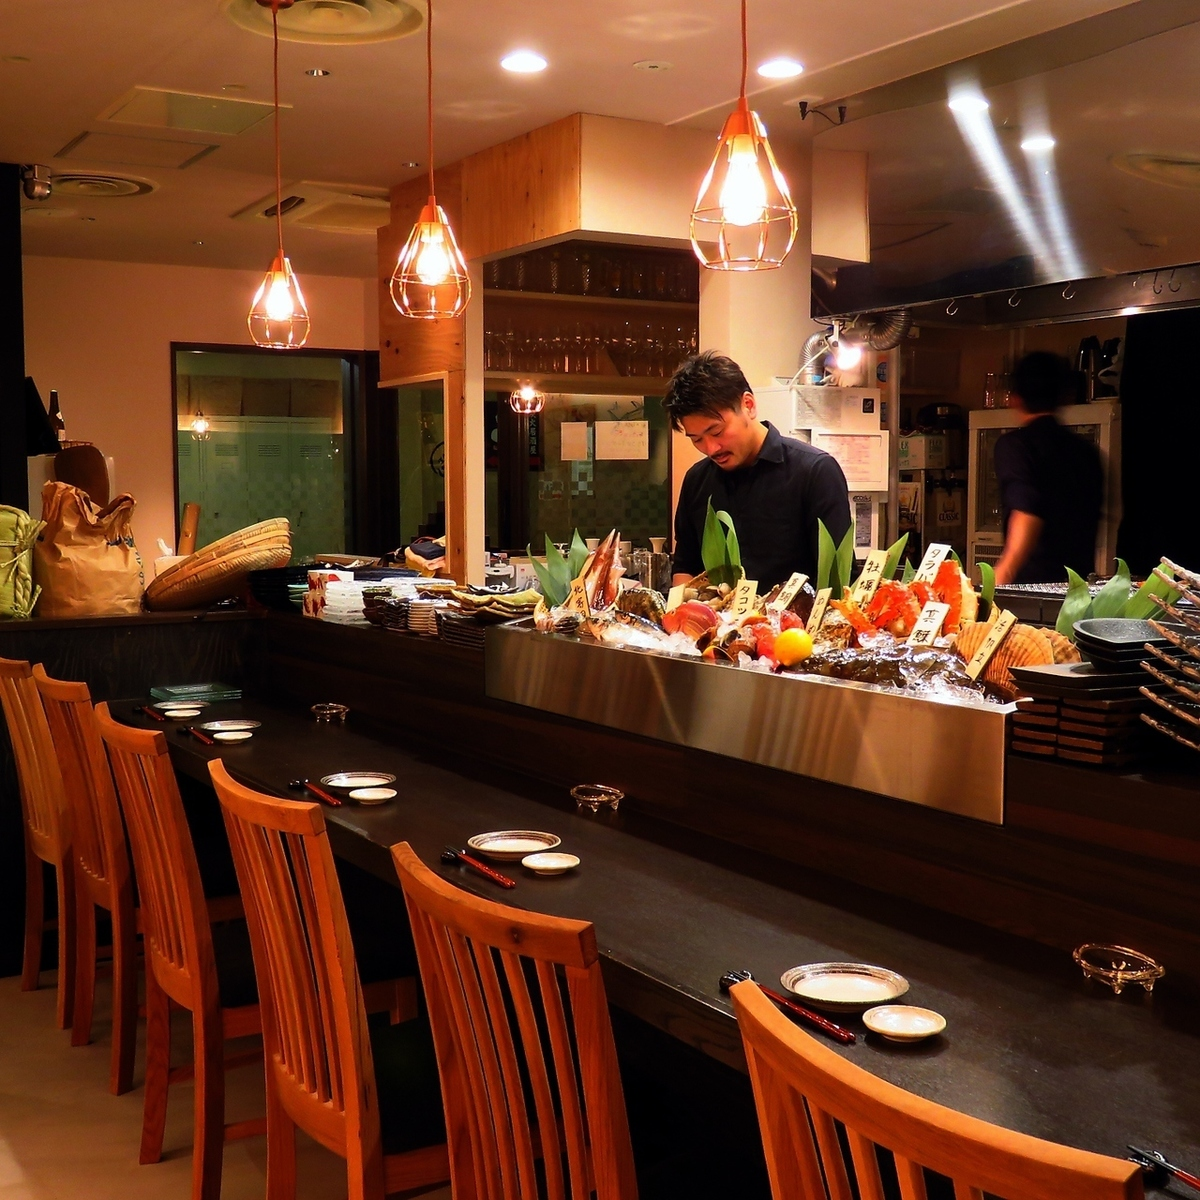 【Preparation for 14 counterparts available】 Special seat with kitchen in front · Counter seats are available for 1 person seats x 4 tables, 2 people 1 pair seats x 5 tables.The meal at the seat where the indirect lighting is illuminated is perfect for date drinking as well as drinking at the company's return.